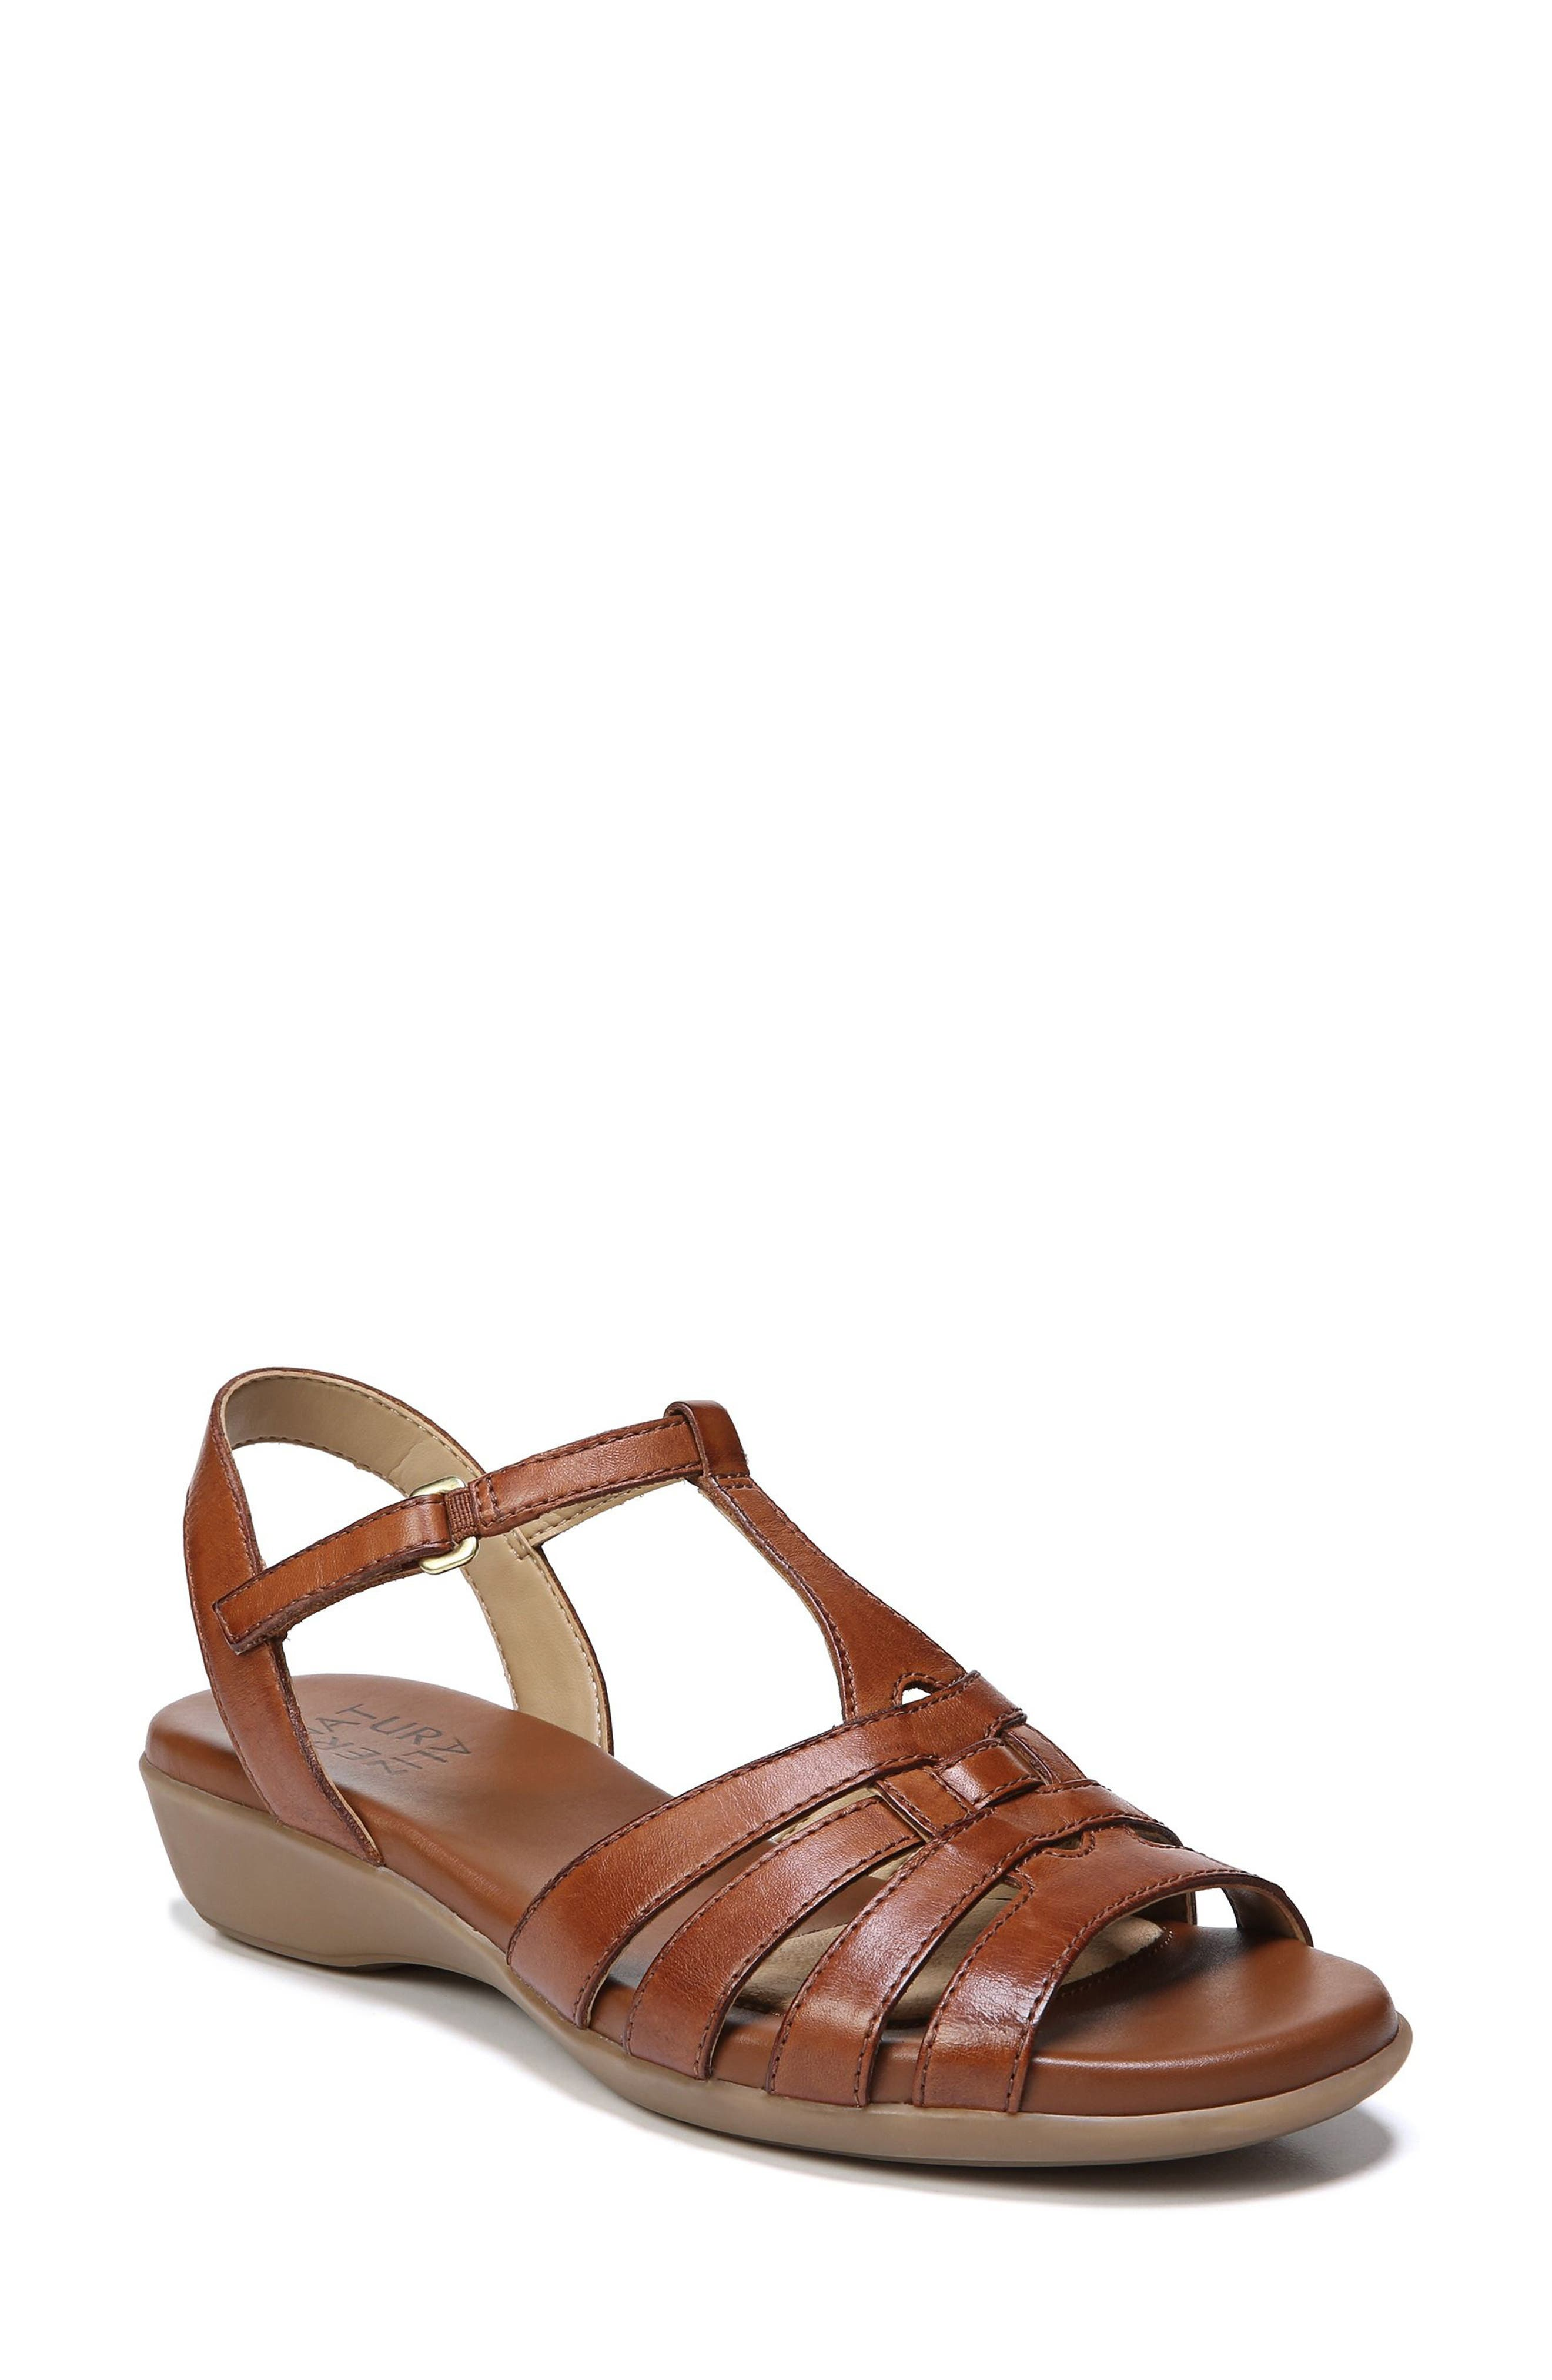 Nanci Sandal by Naturalizer